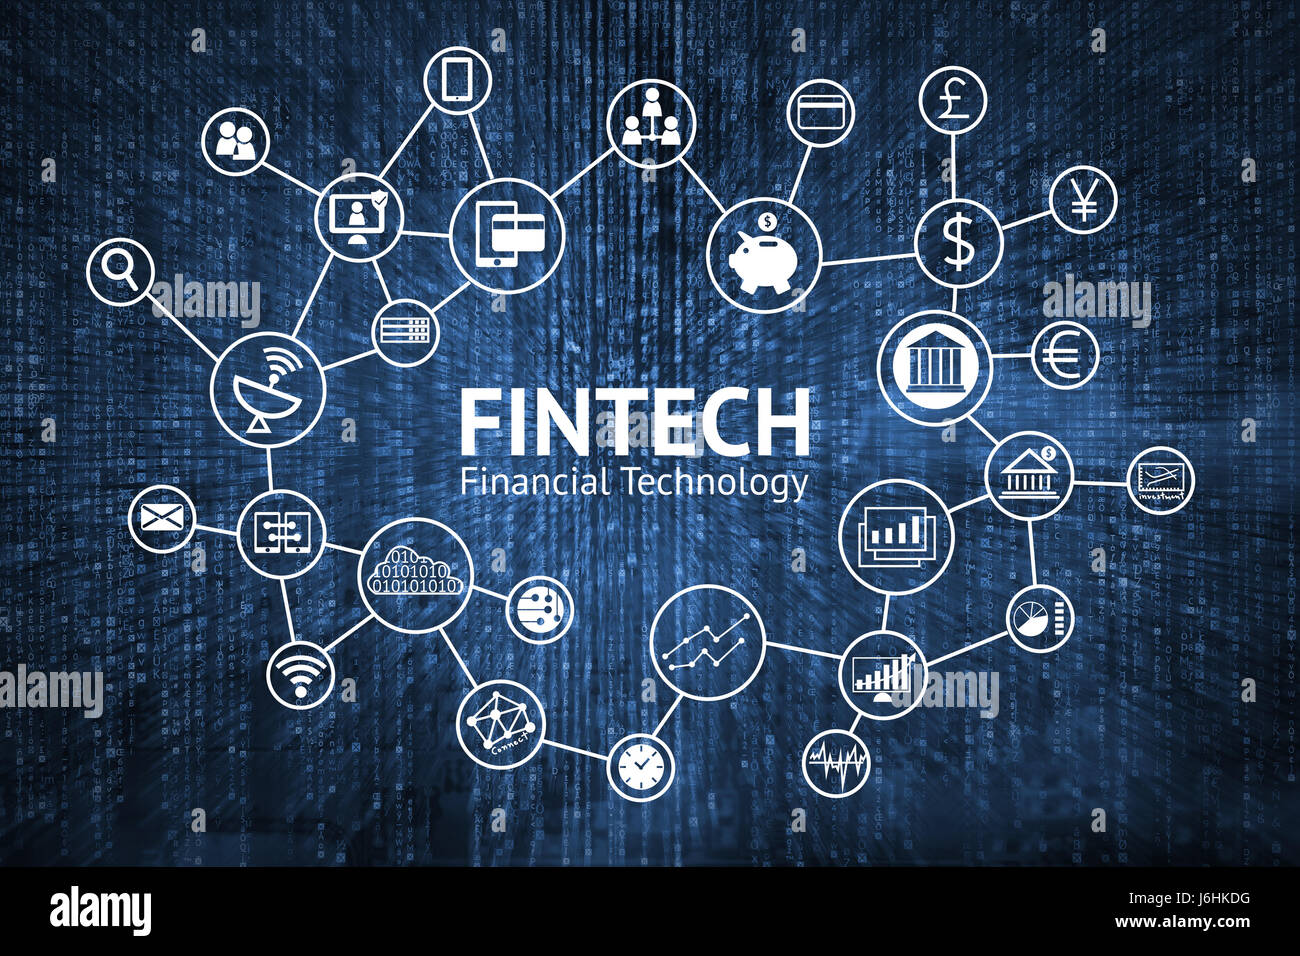 Fintech Internet Concept. text and Investment Financial Technology icons with blue matrix coded background Stock Photo